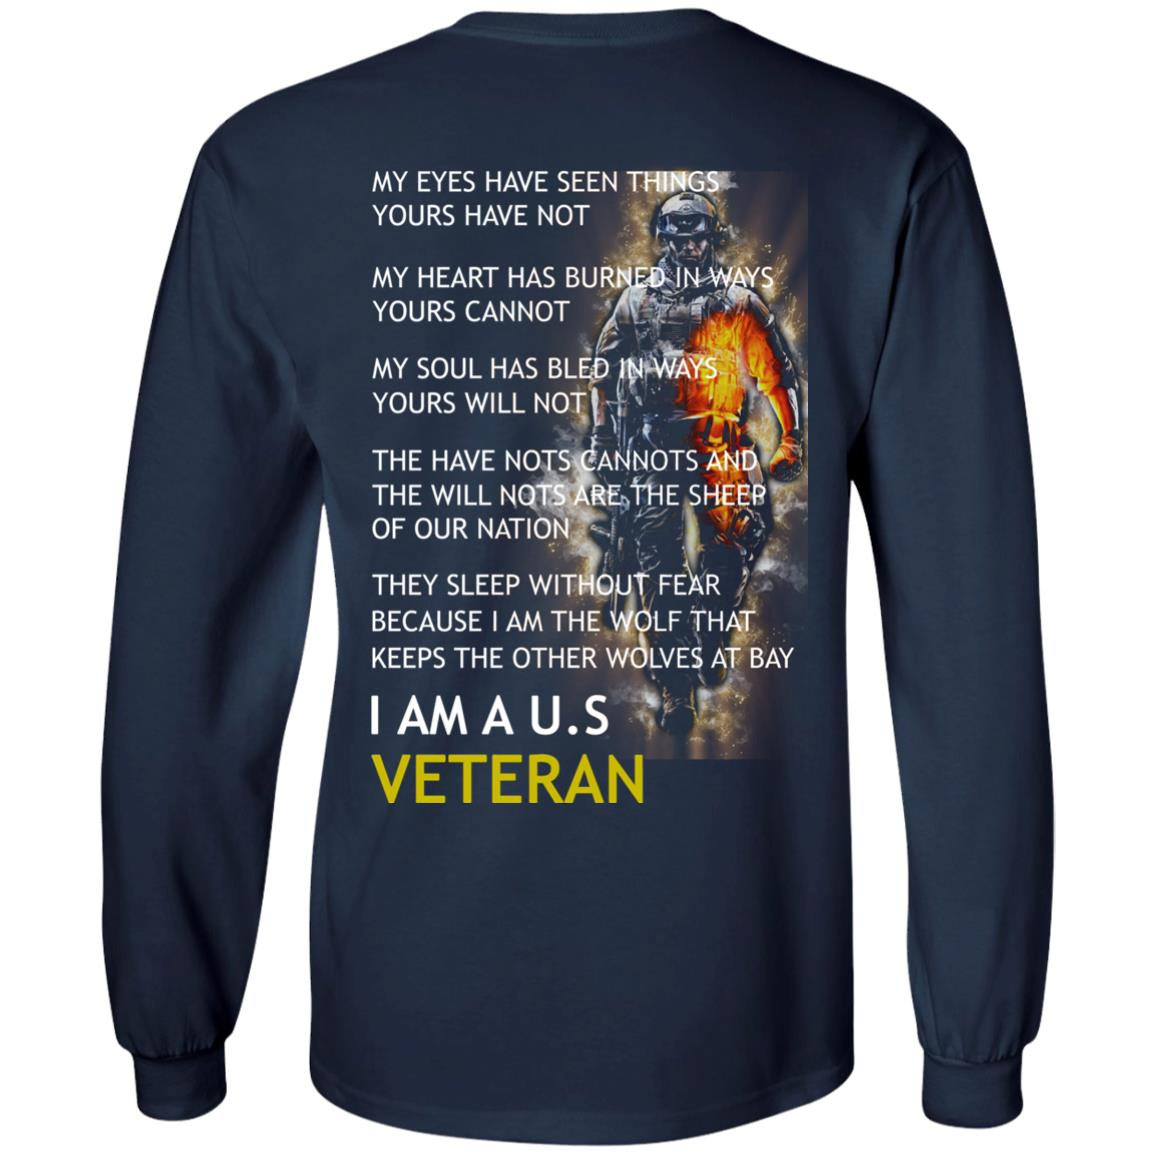 image 5px I am a US Veteran my eyes have seen things yours have not back side t shirt, hoodies